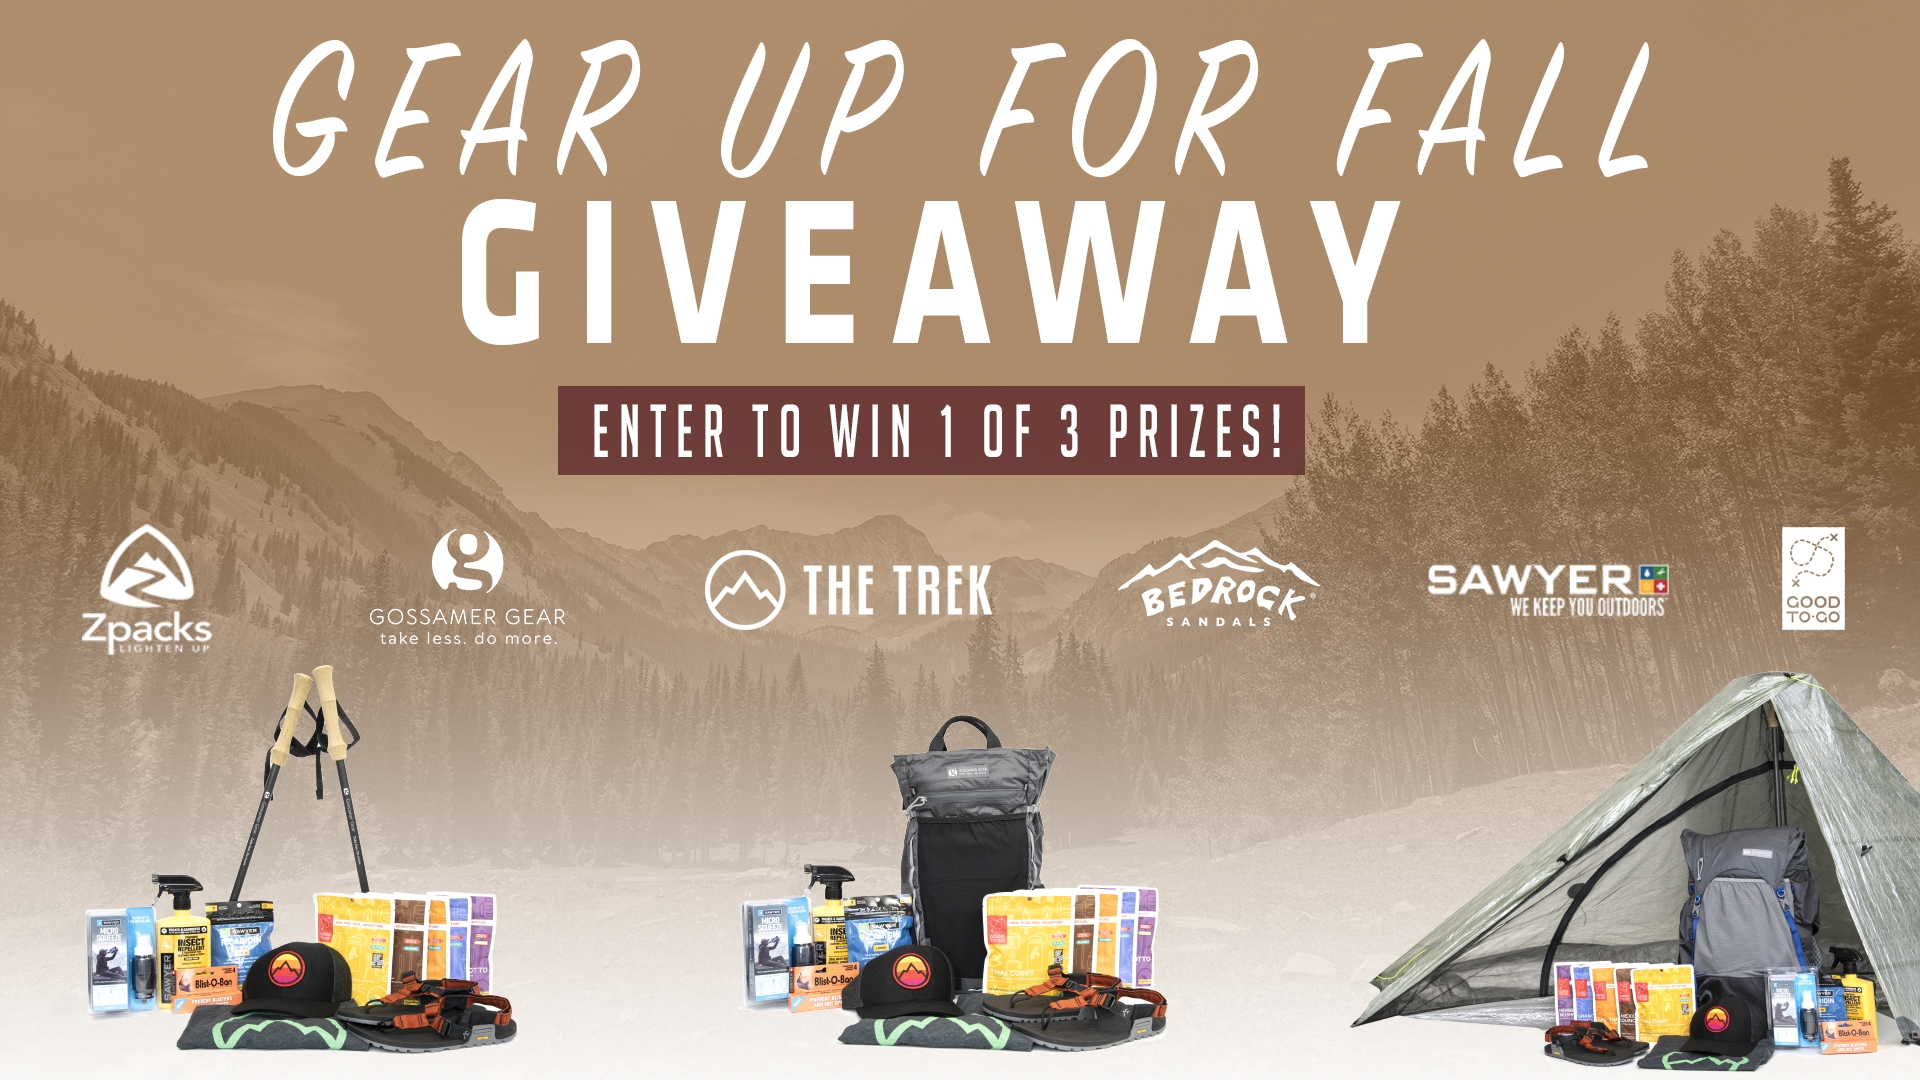 gear up for fall giveaway featured site